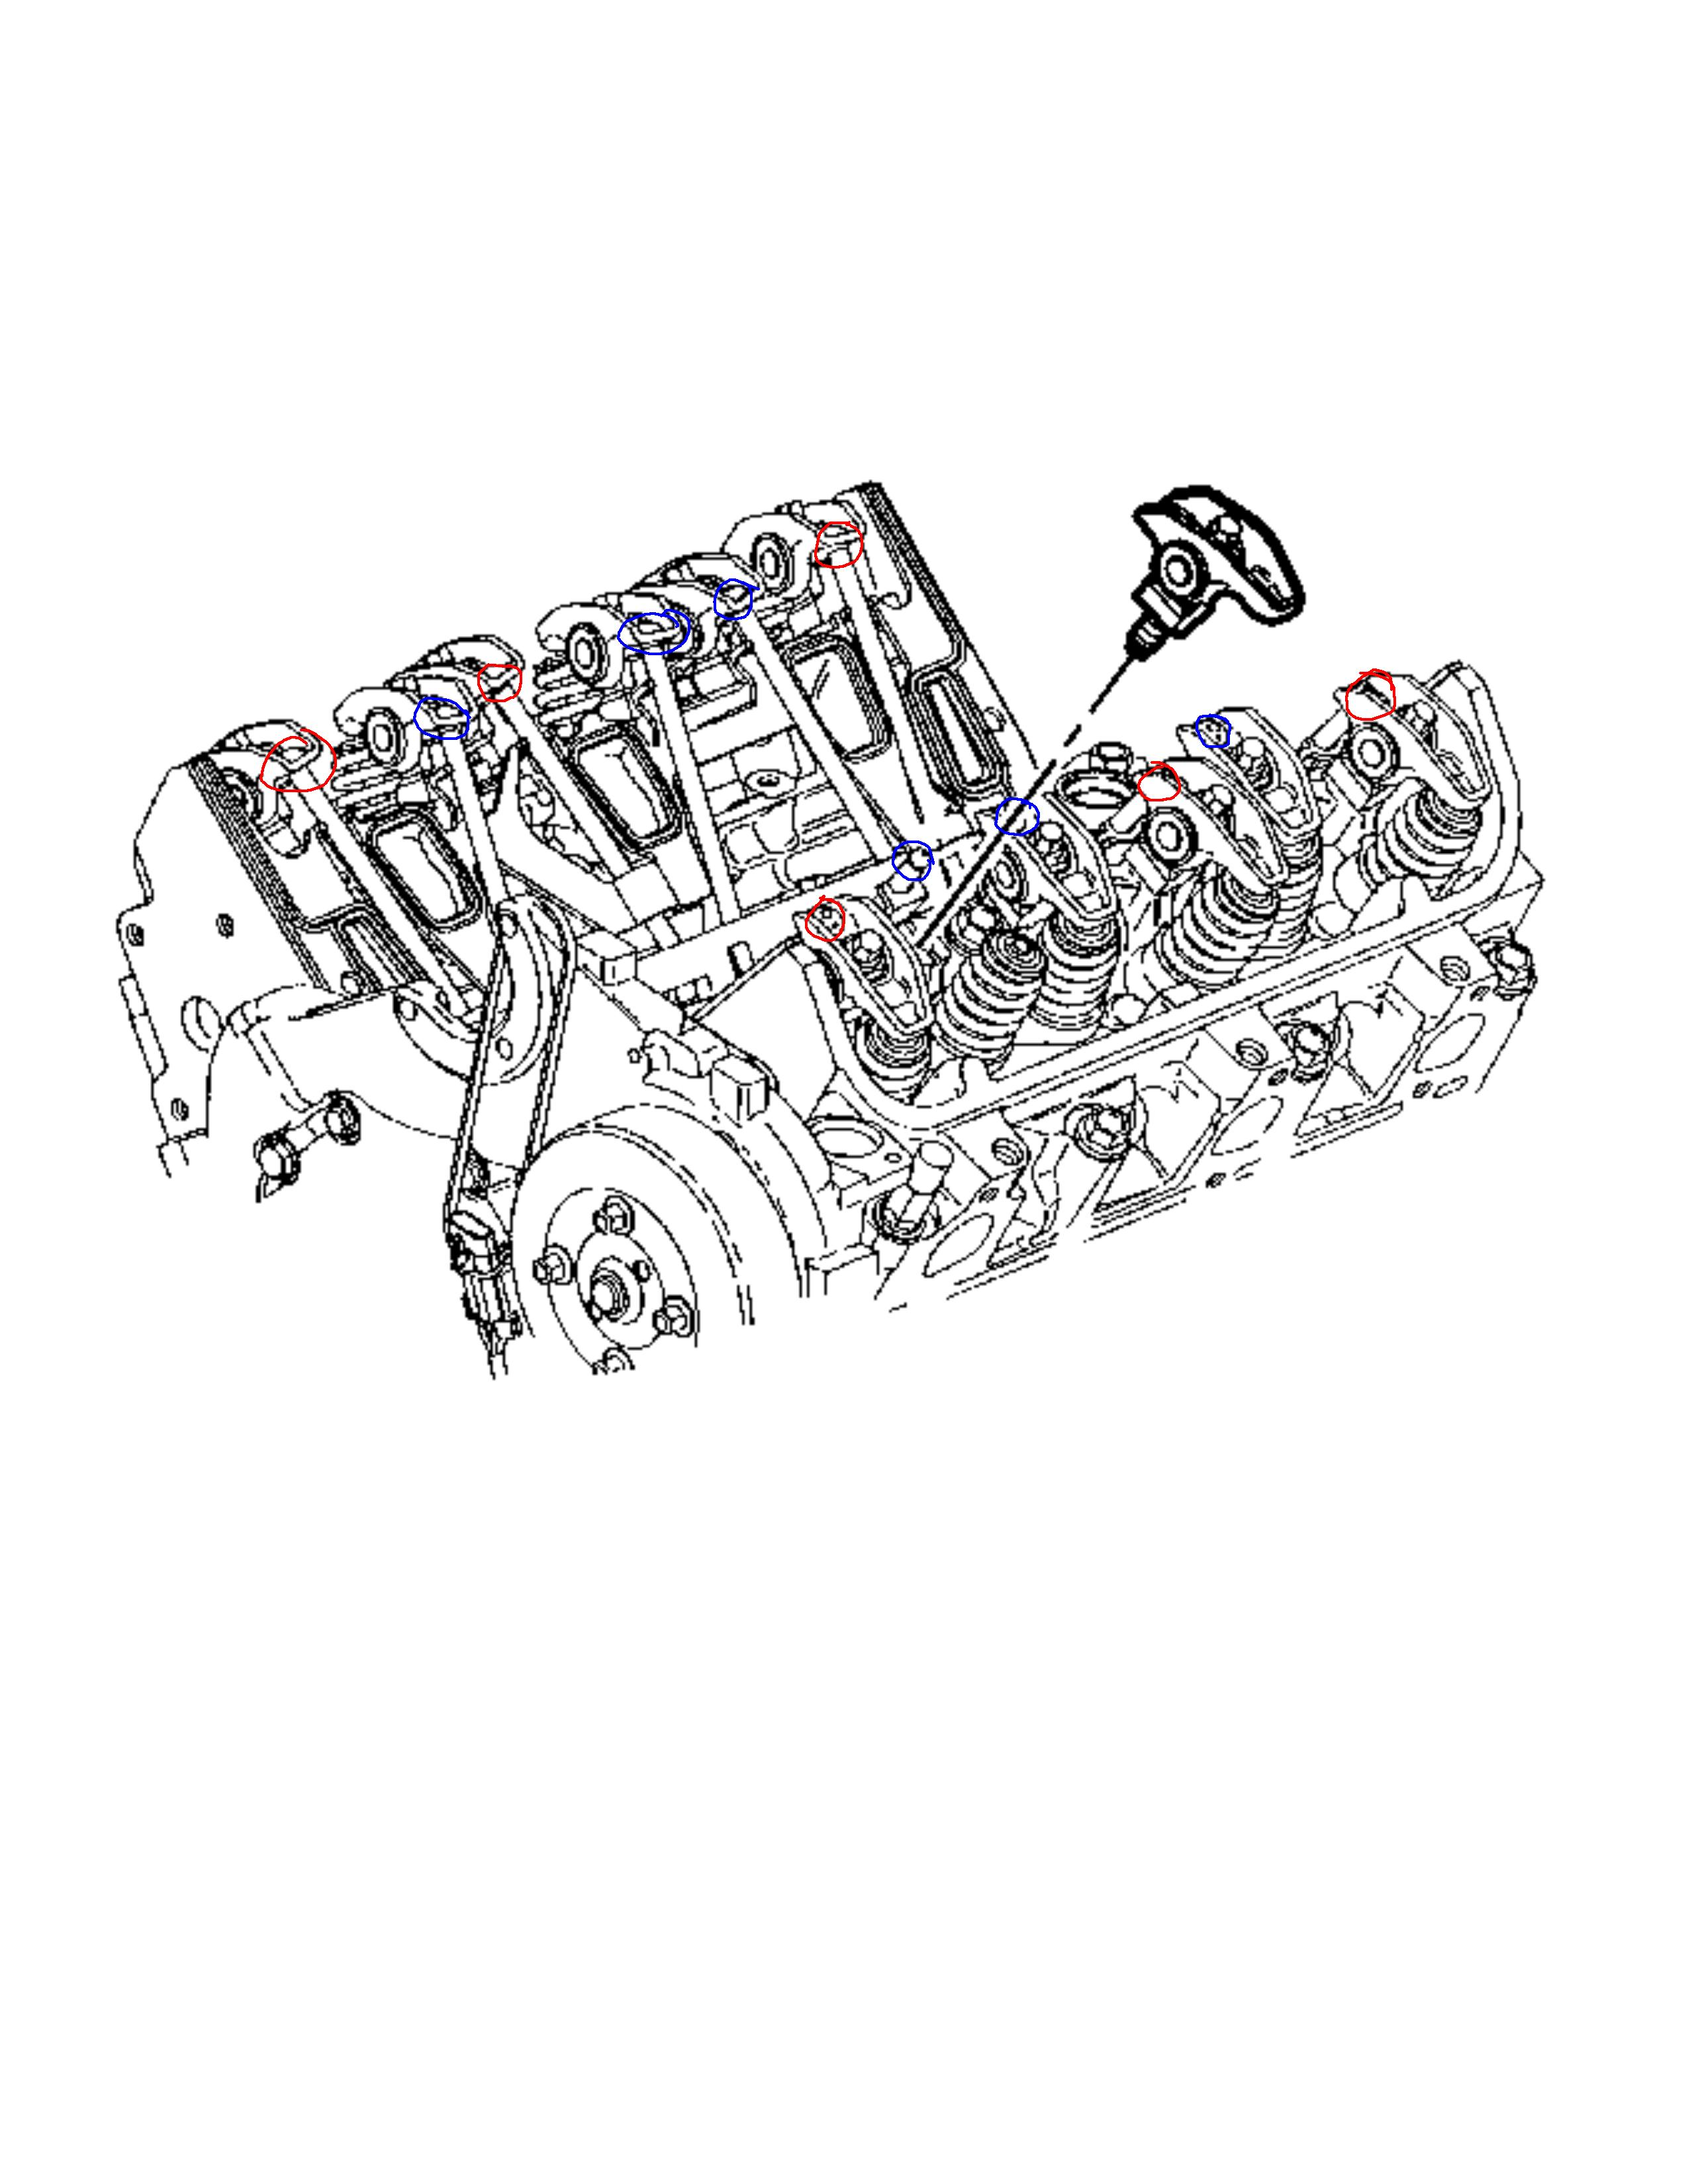 I Need A Valve Diagram For A Gm 3400 Engine  With Intake